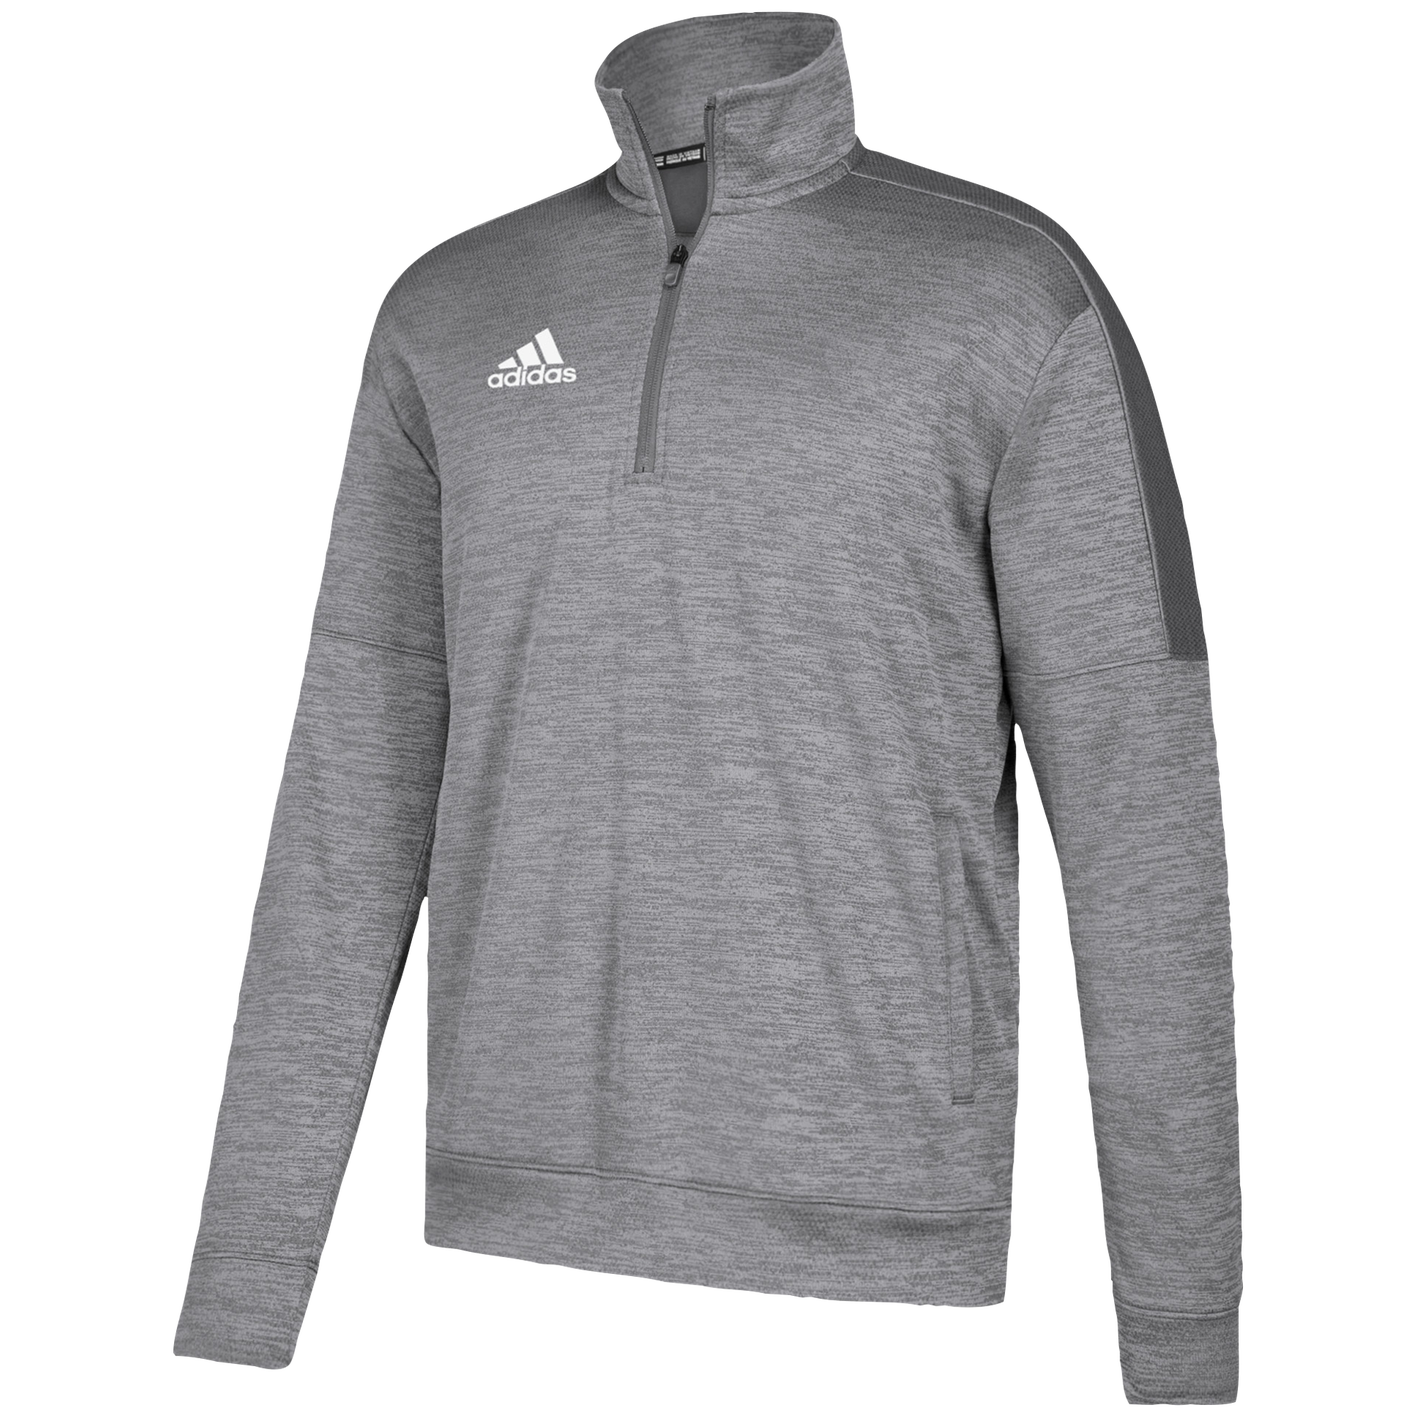 sports shoes 74374 5b2cc adidas Team Issue Fleece 1 4 Zip - Men s